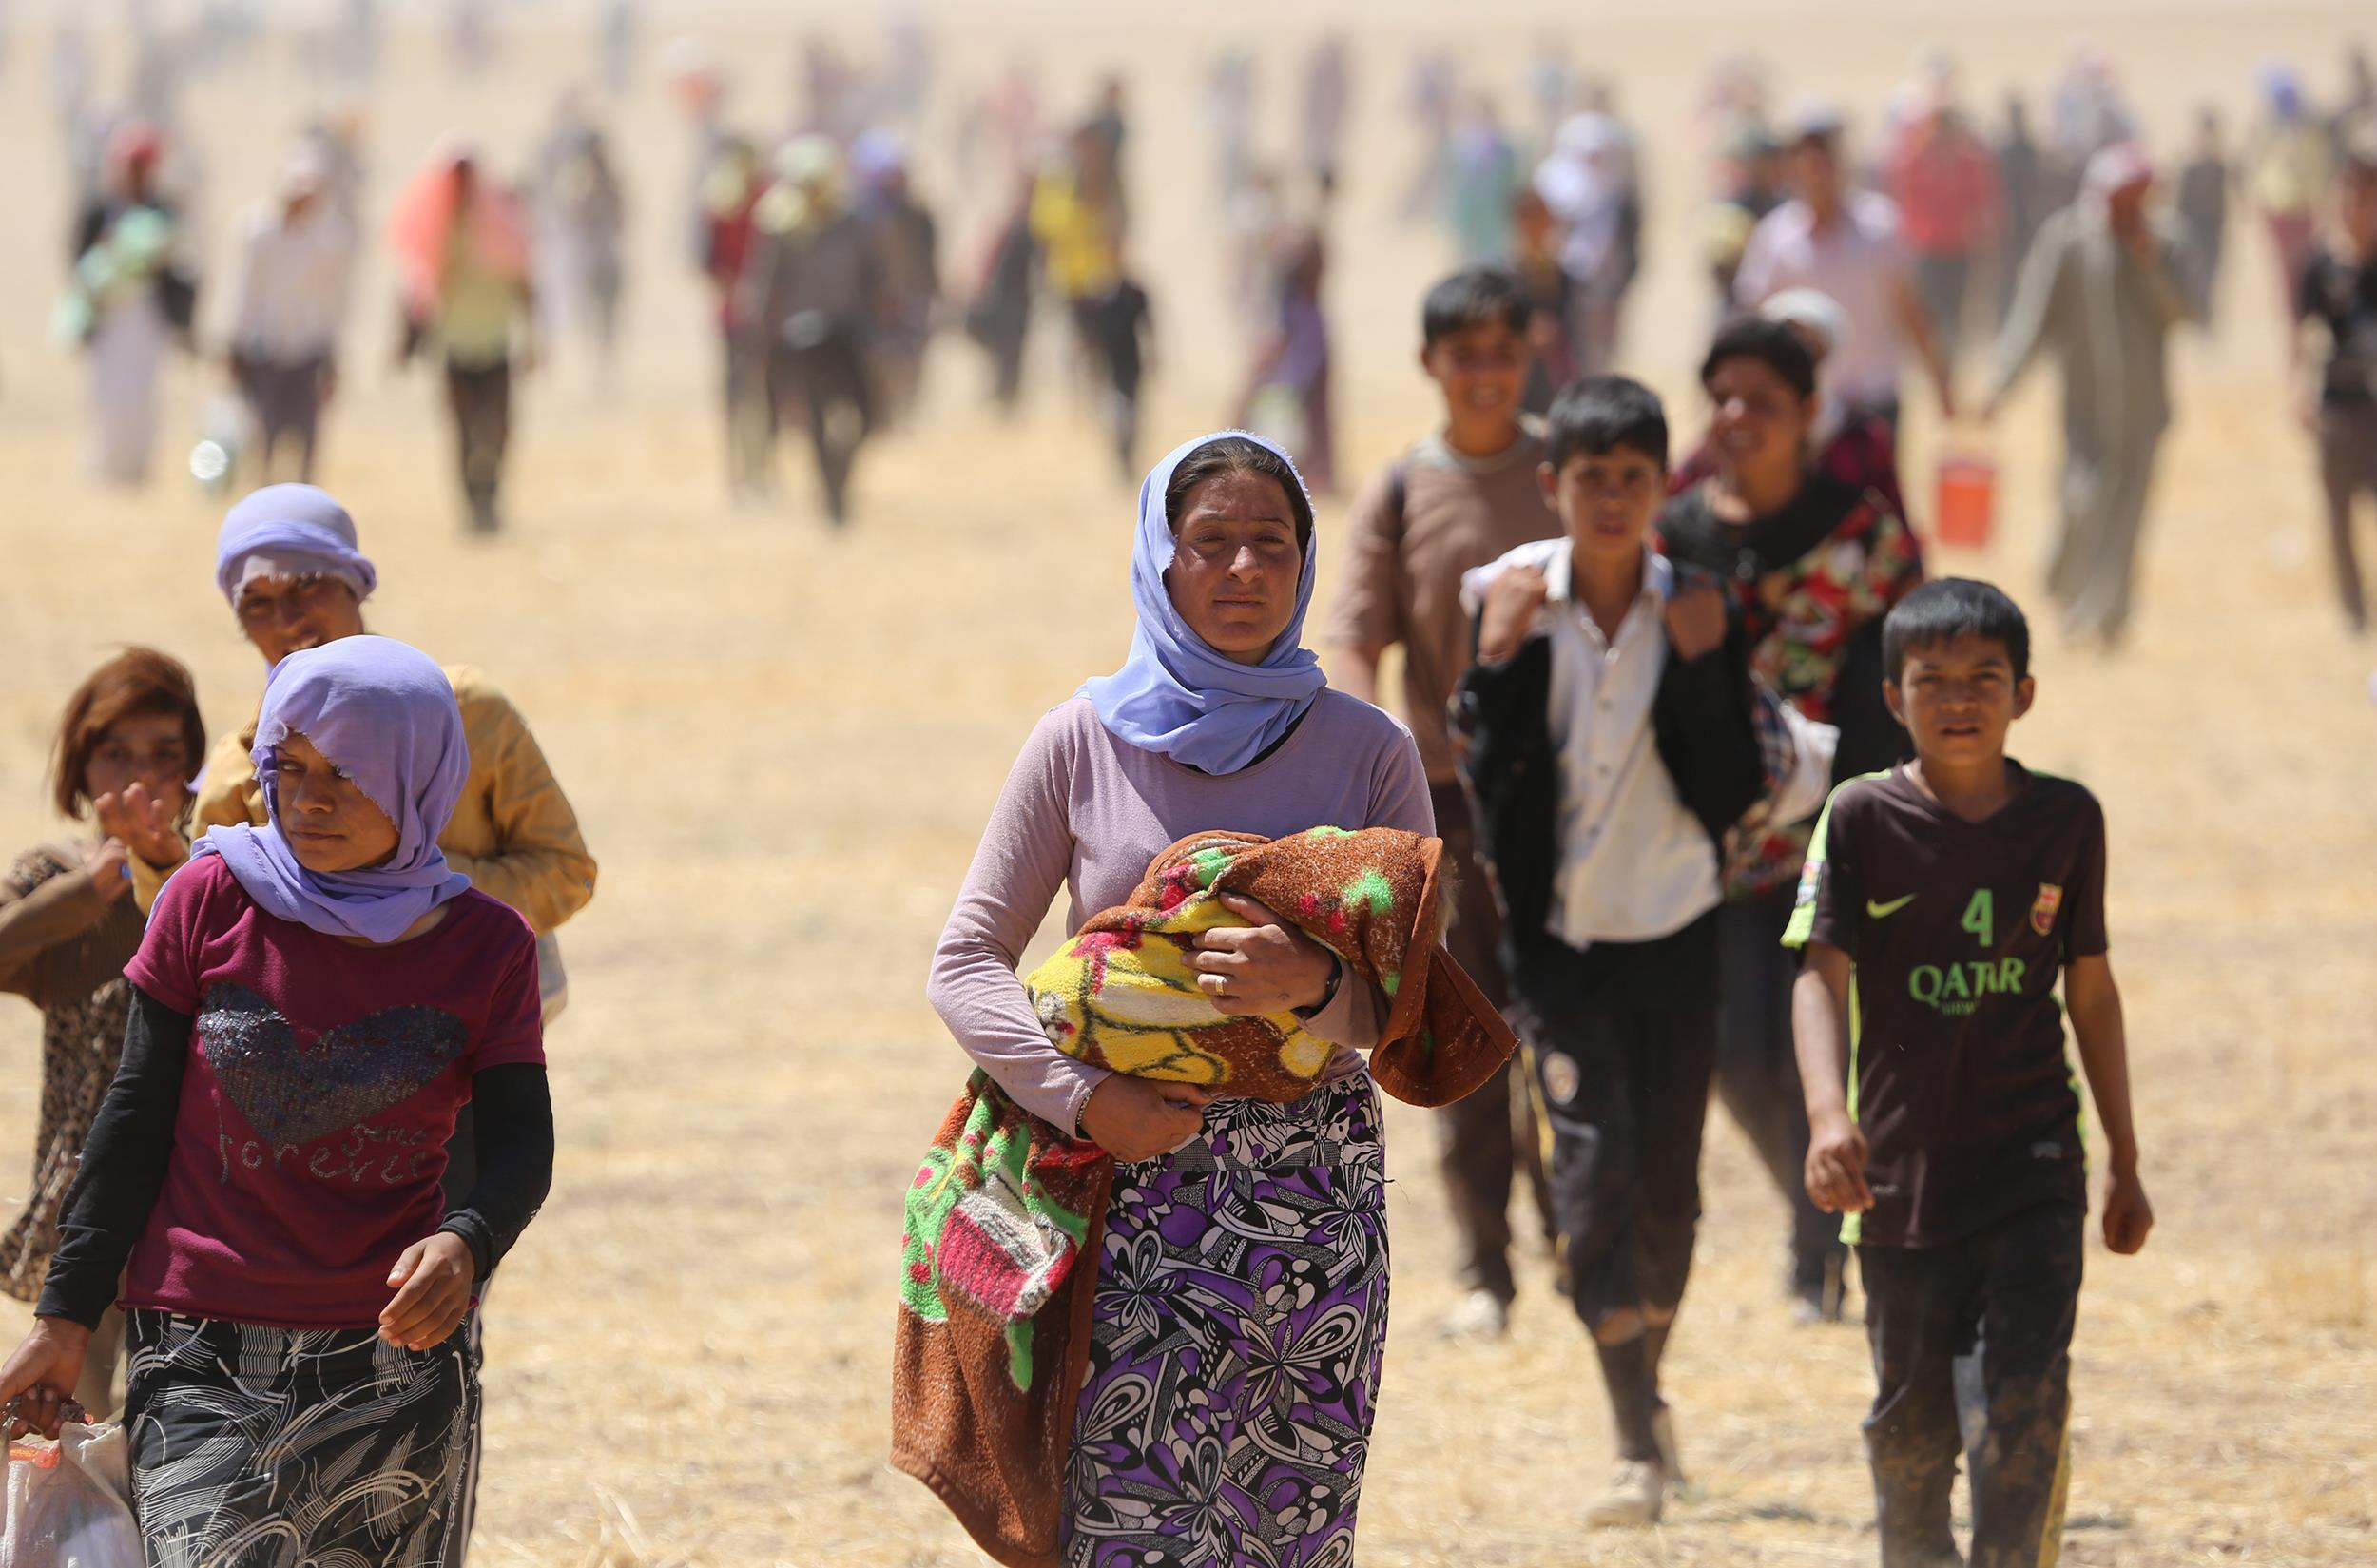 Yezidis flee from Daesh Aug 3rd 2014